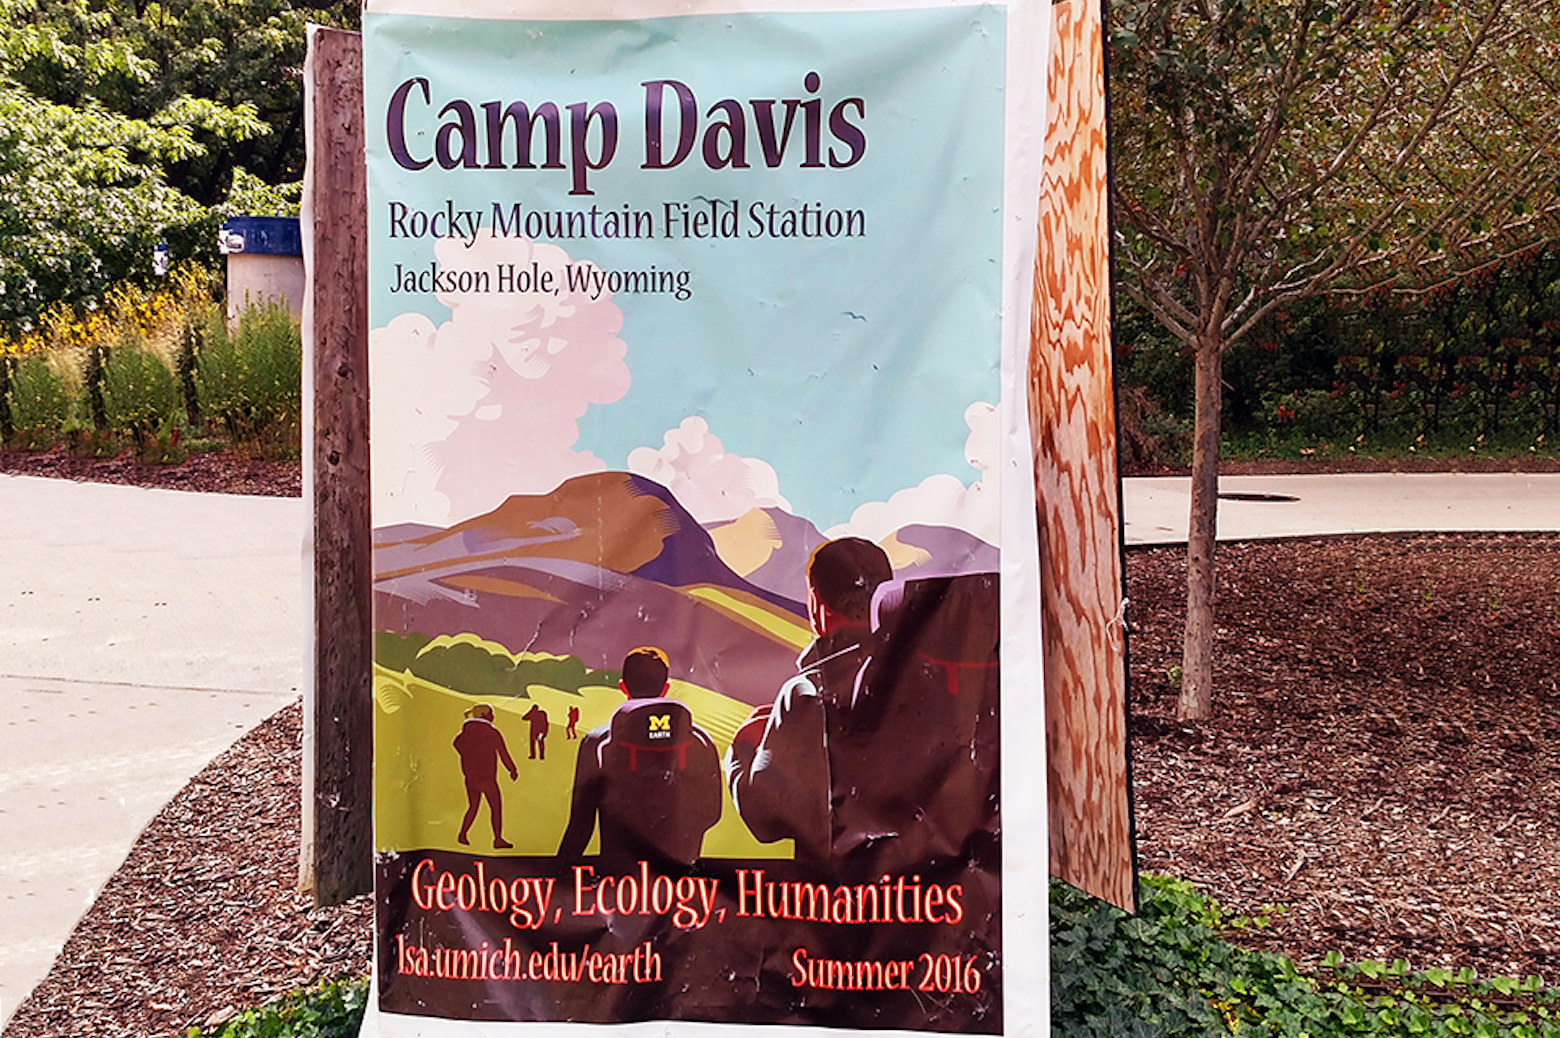 Poster for Camp Davis at Michigan Campus